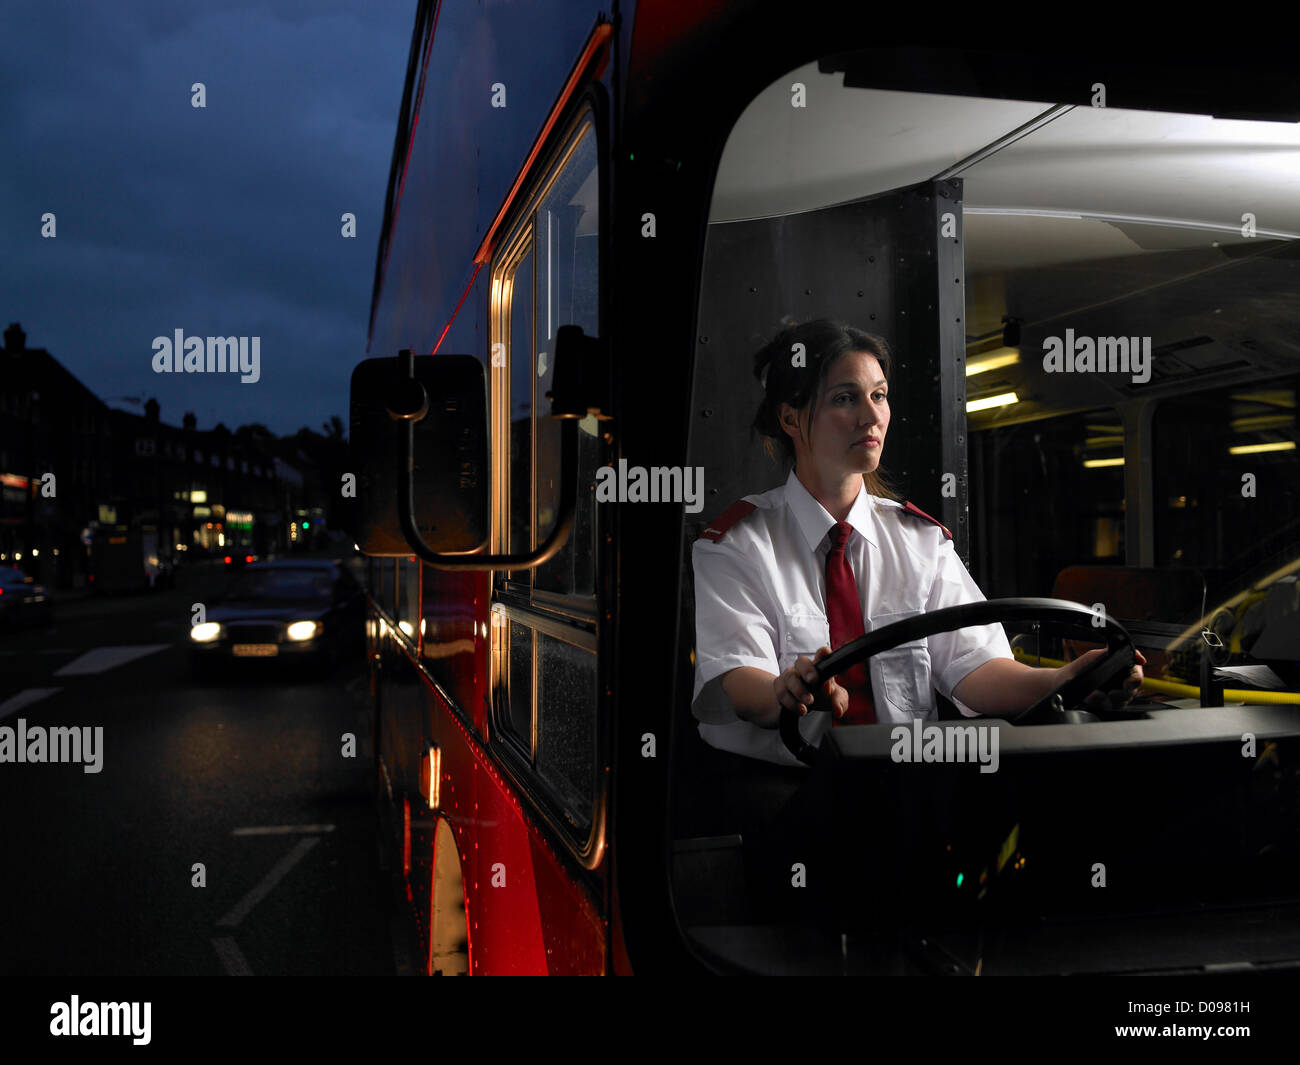 Female bus driver driving double decker bus through urban environment at night - Stock Image